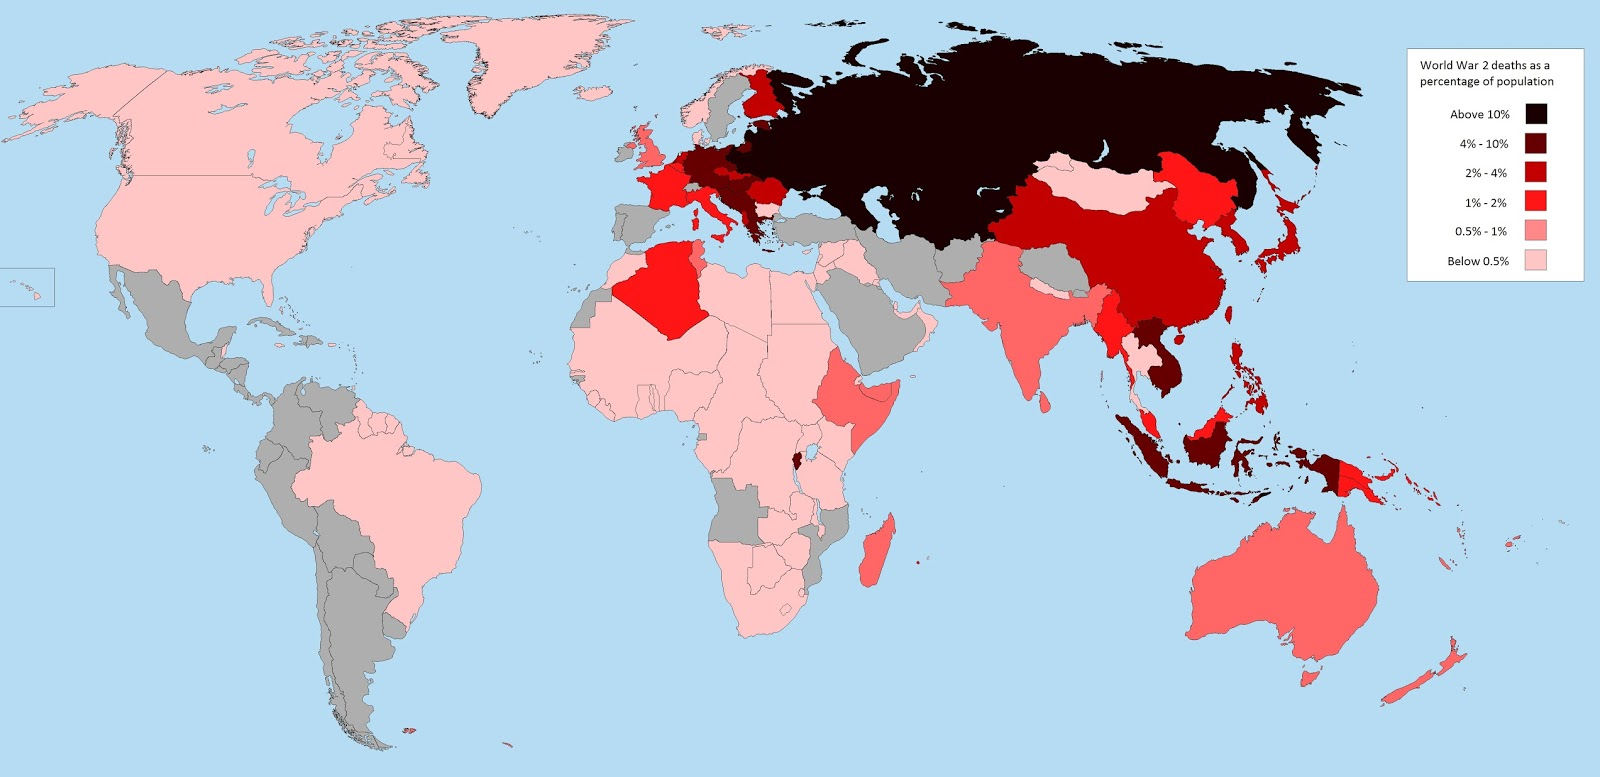 World War 2 deaths as a percentage of each nation's population